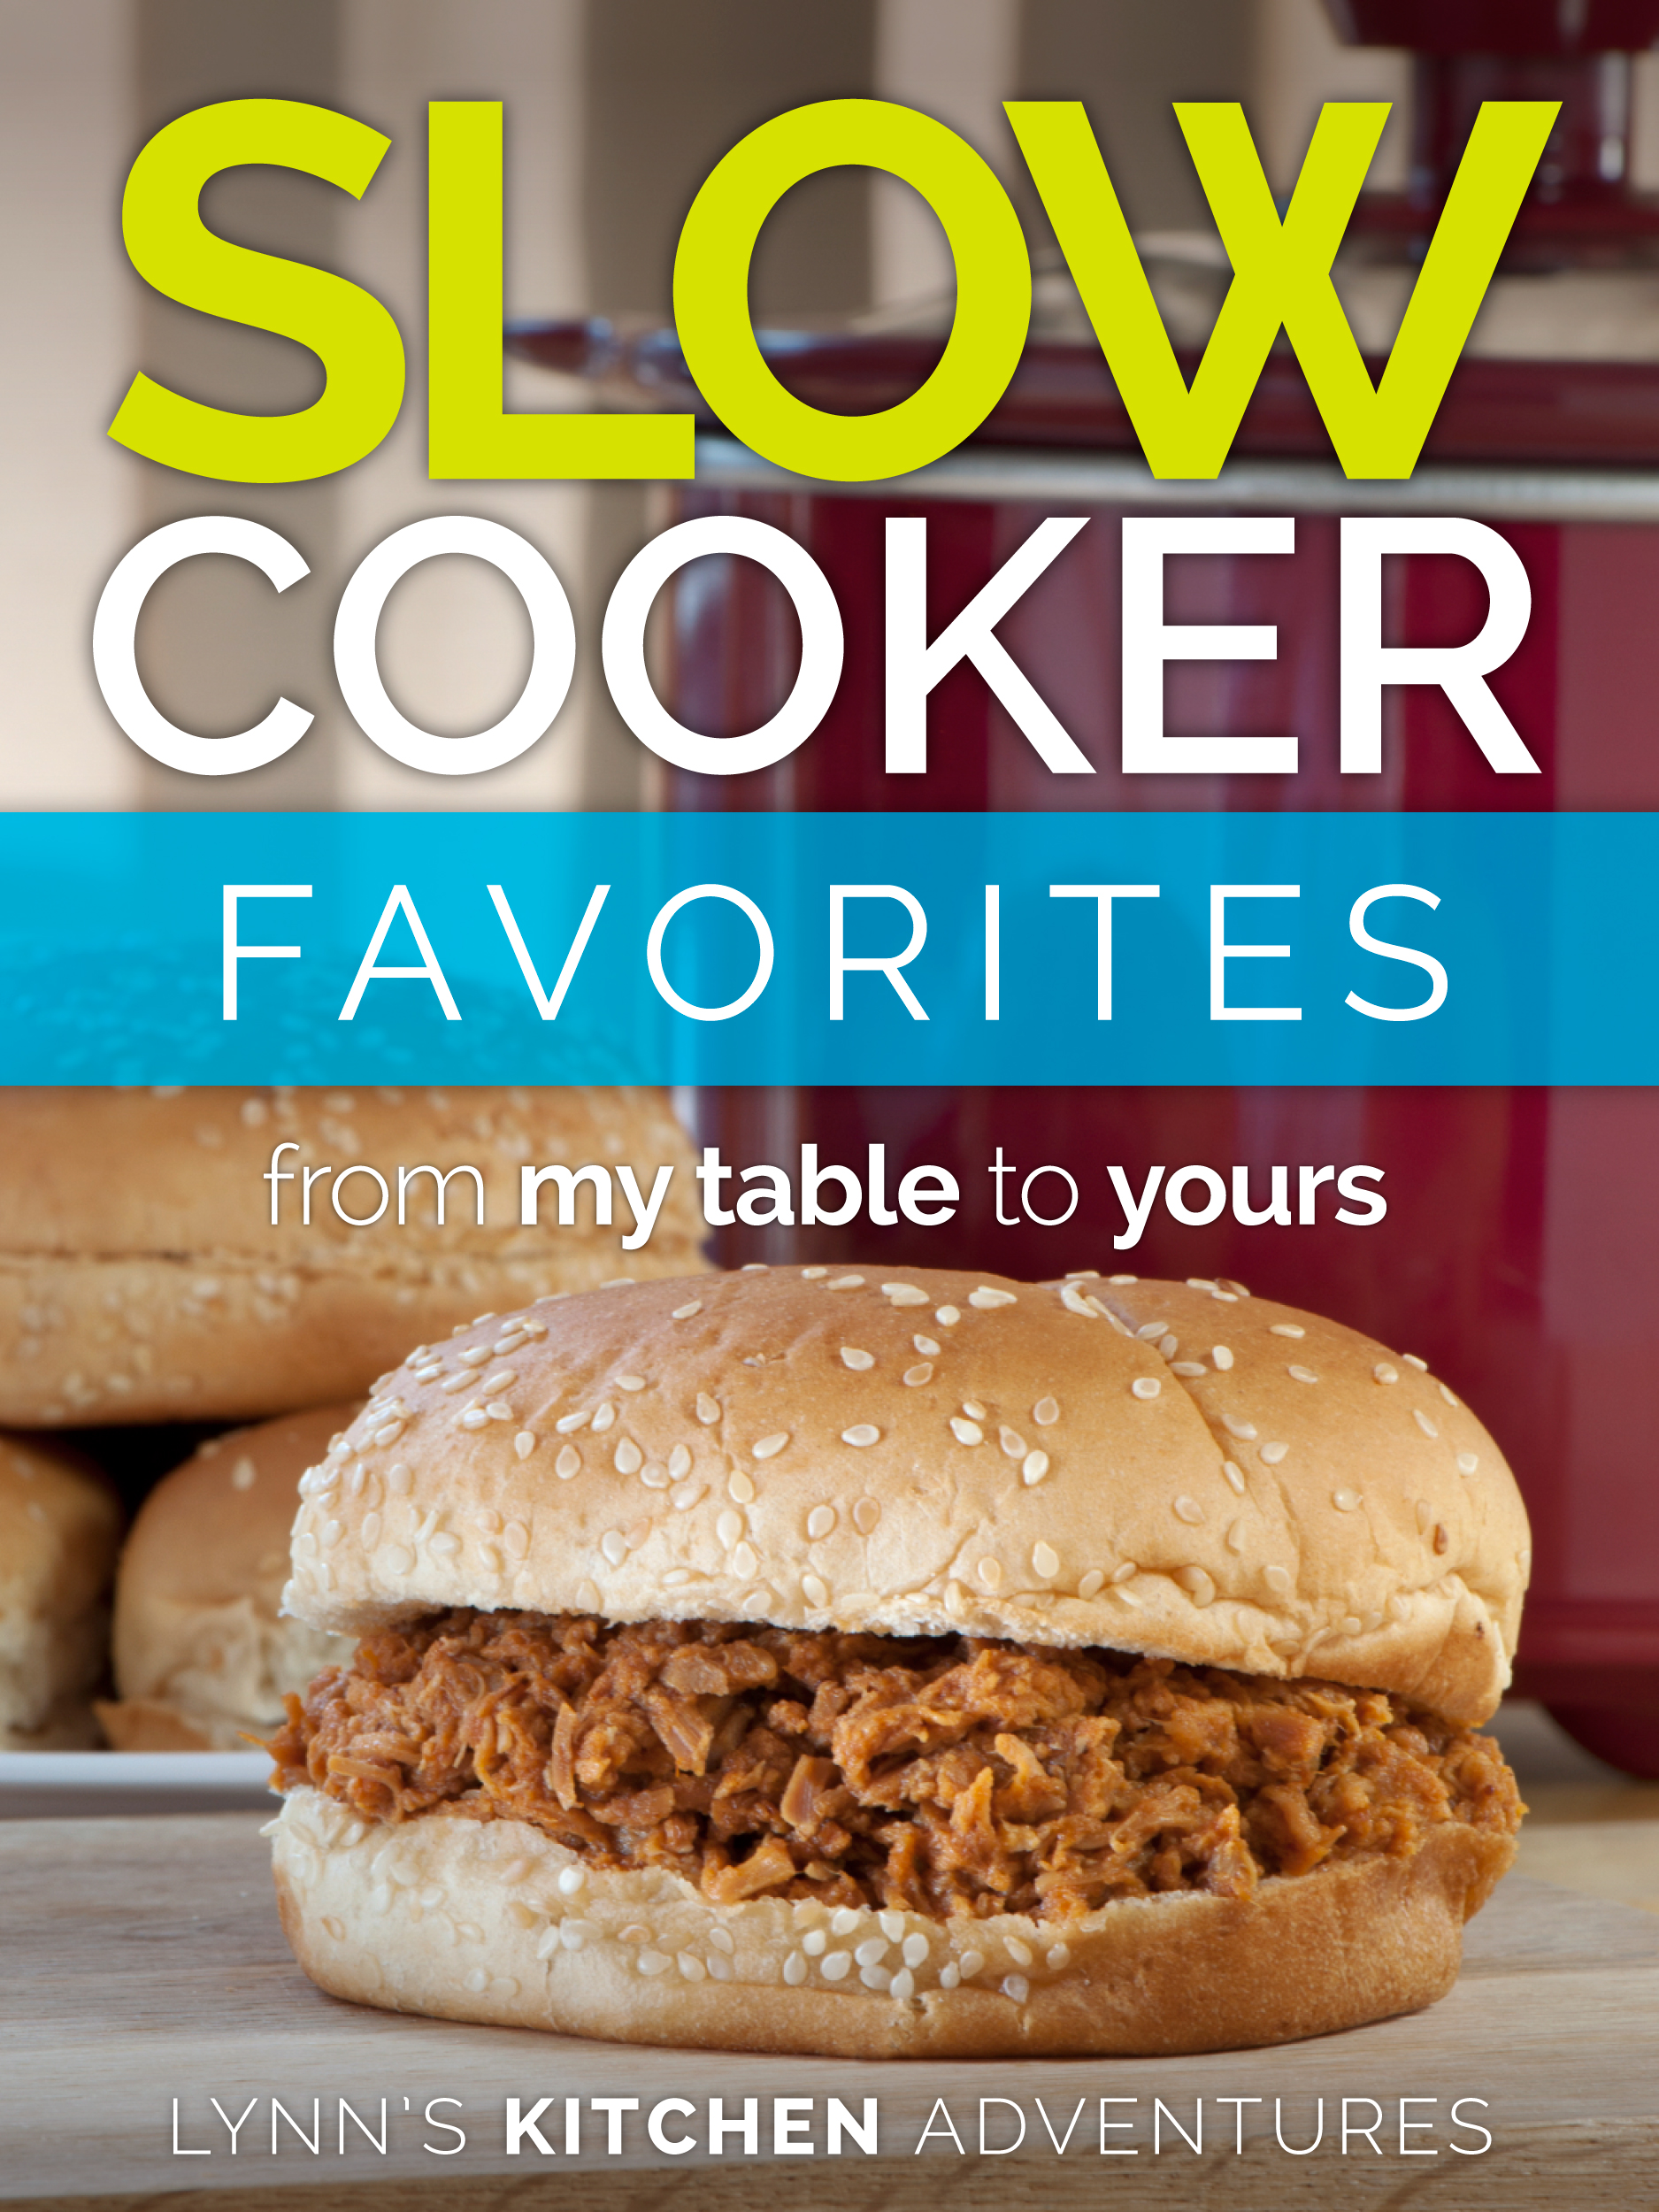 Slow Cooker Favorites